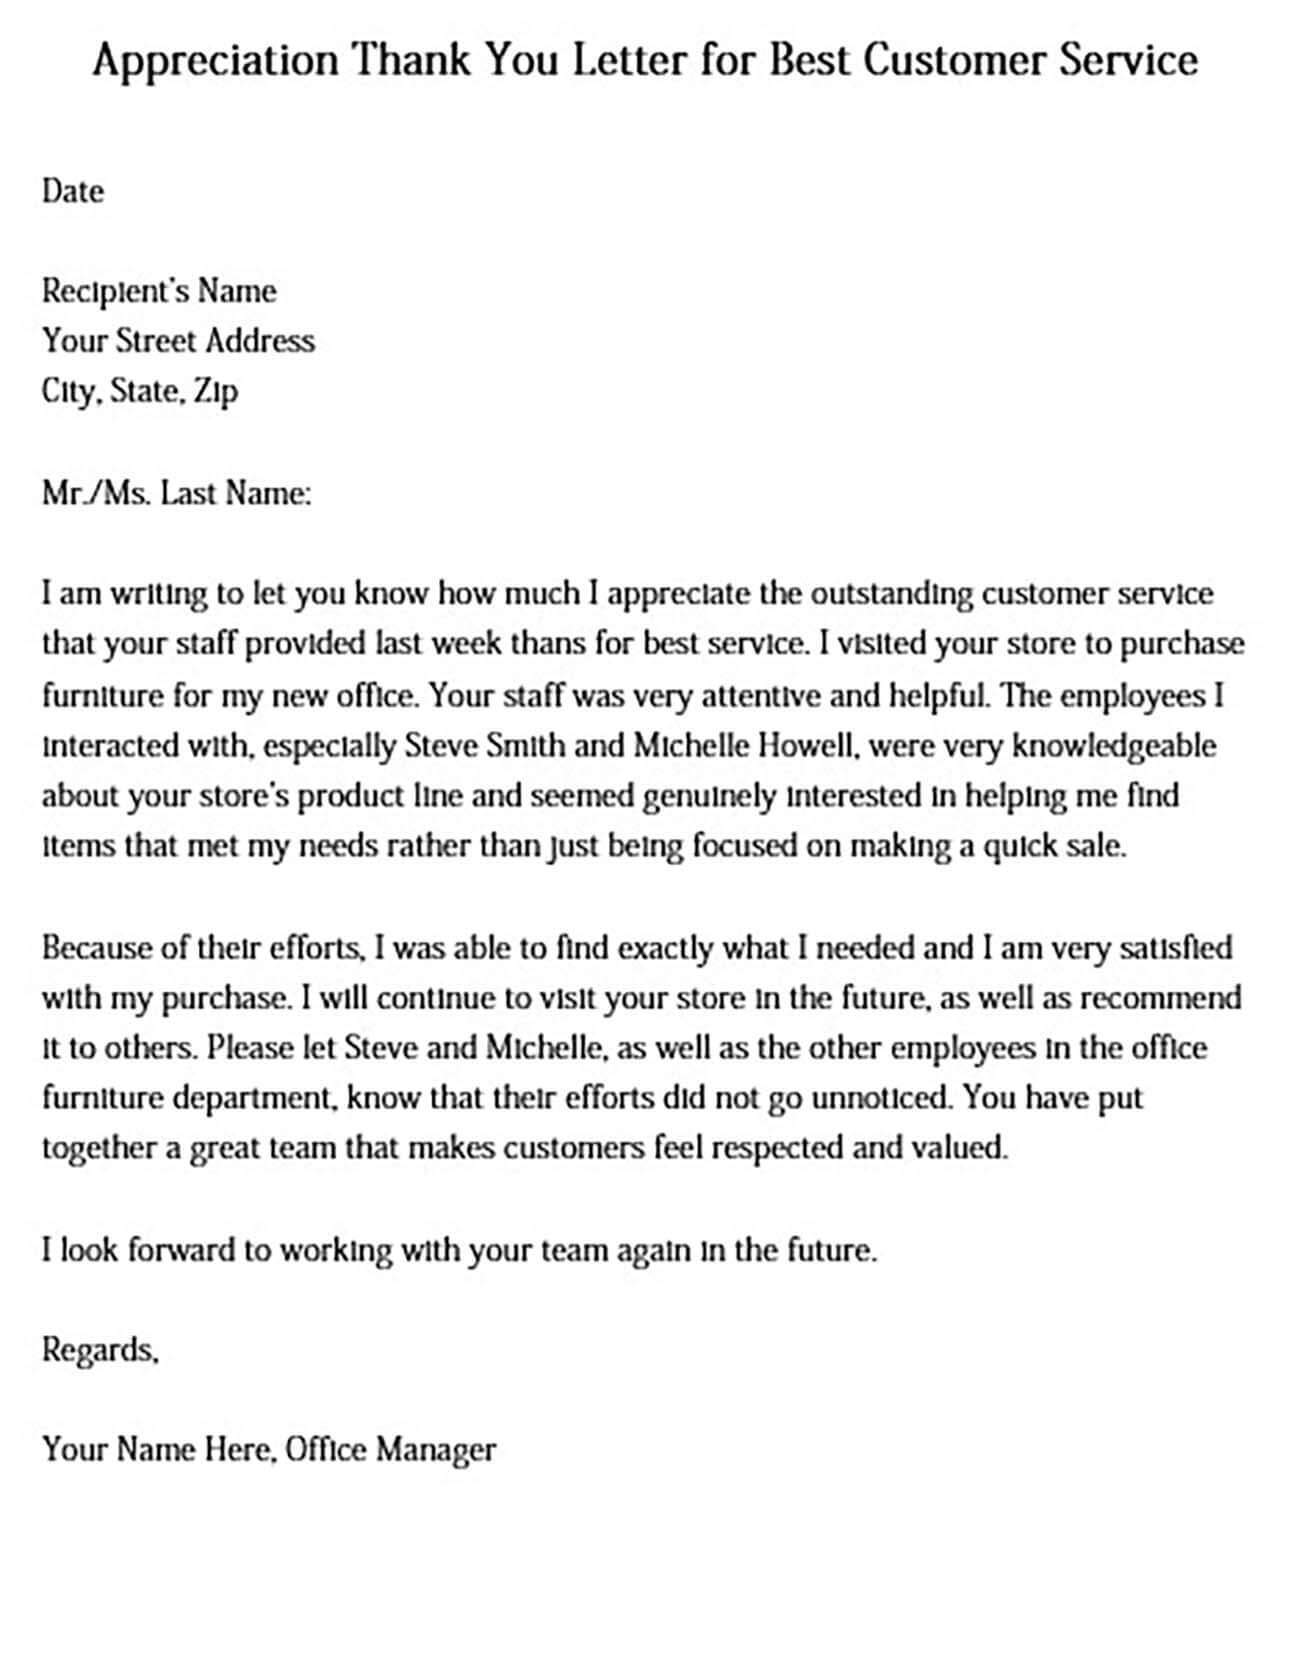 Appreciation Thank You Letter for Best Customer Service